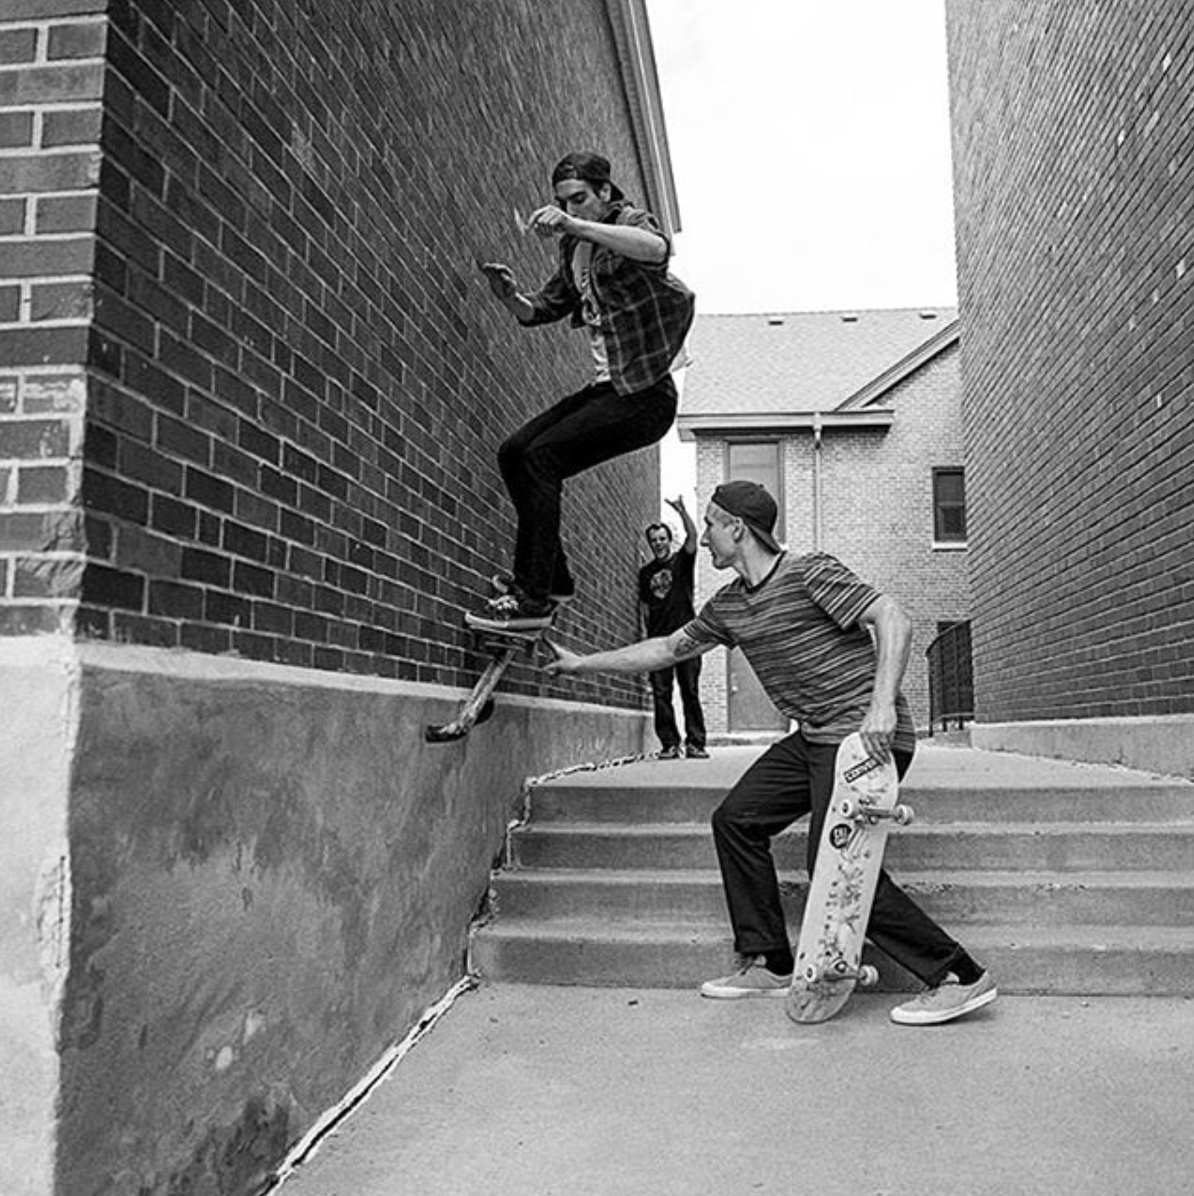 Frontside 50-50 by Max Matekis, assisted by TJ Moran and Jan Jacobson.